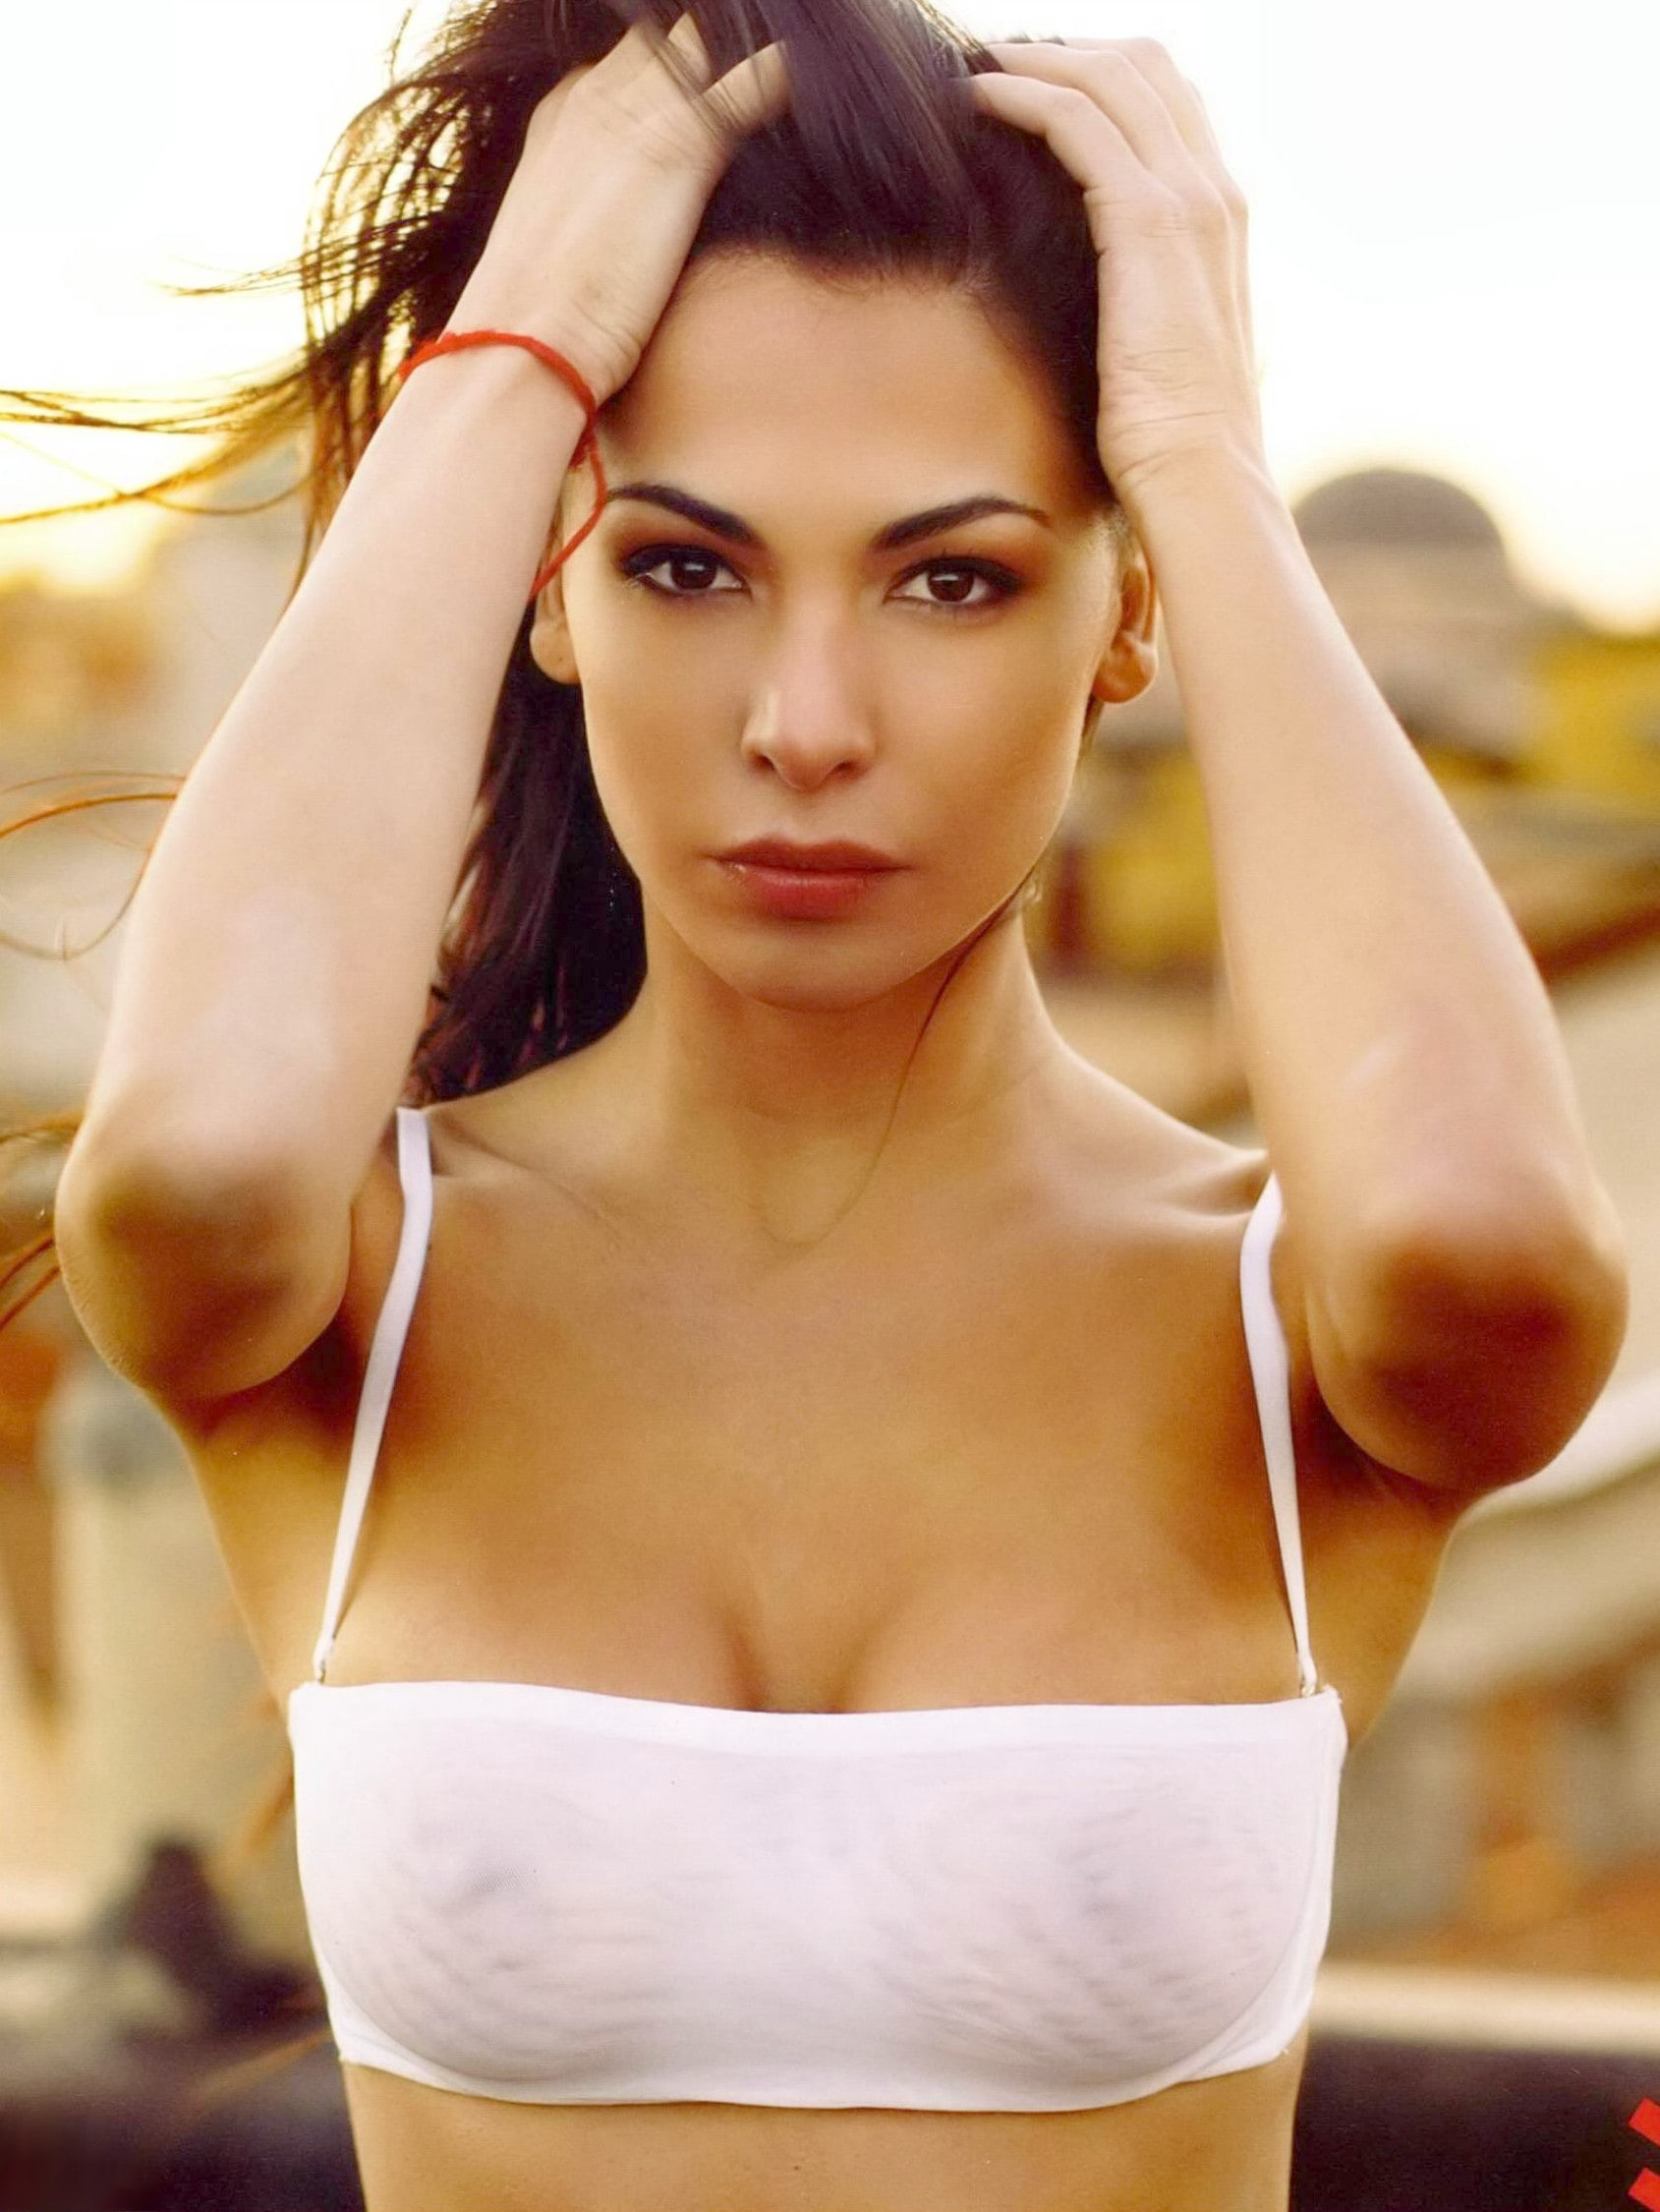 Moran Atias Wallpapers